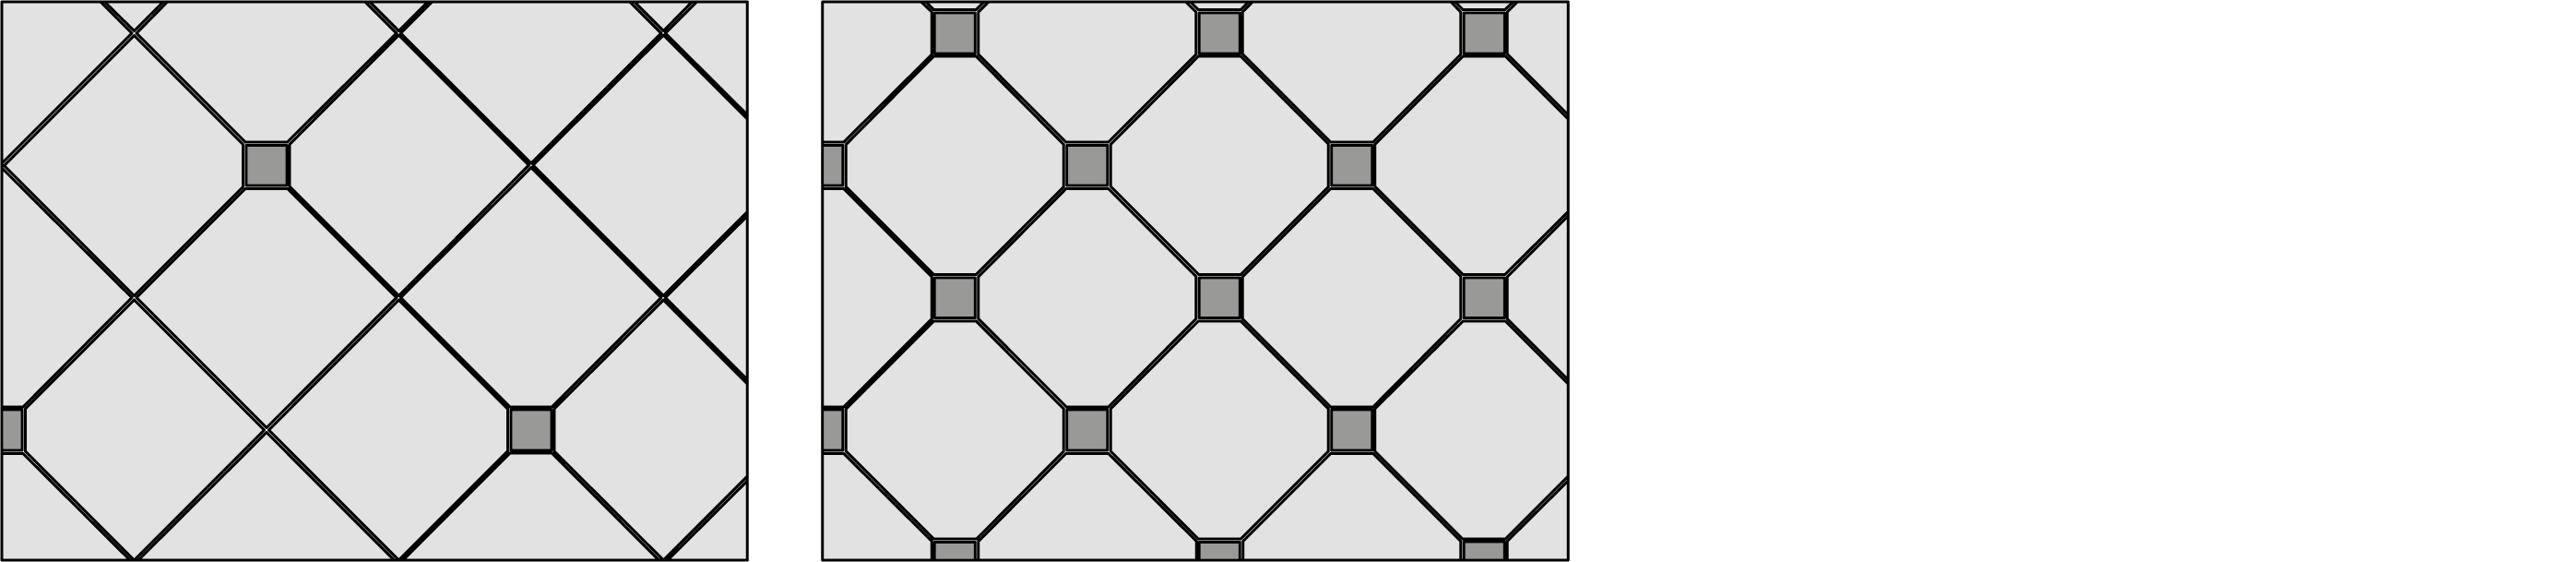 floor, pattern, layout, diagonal